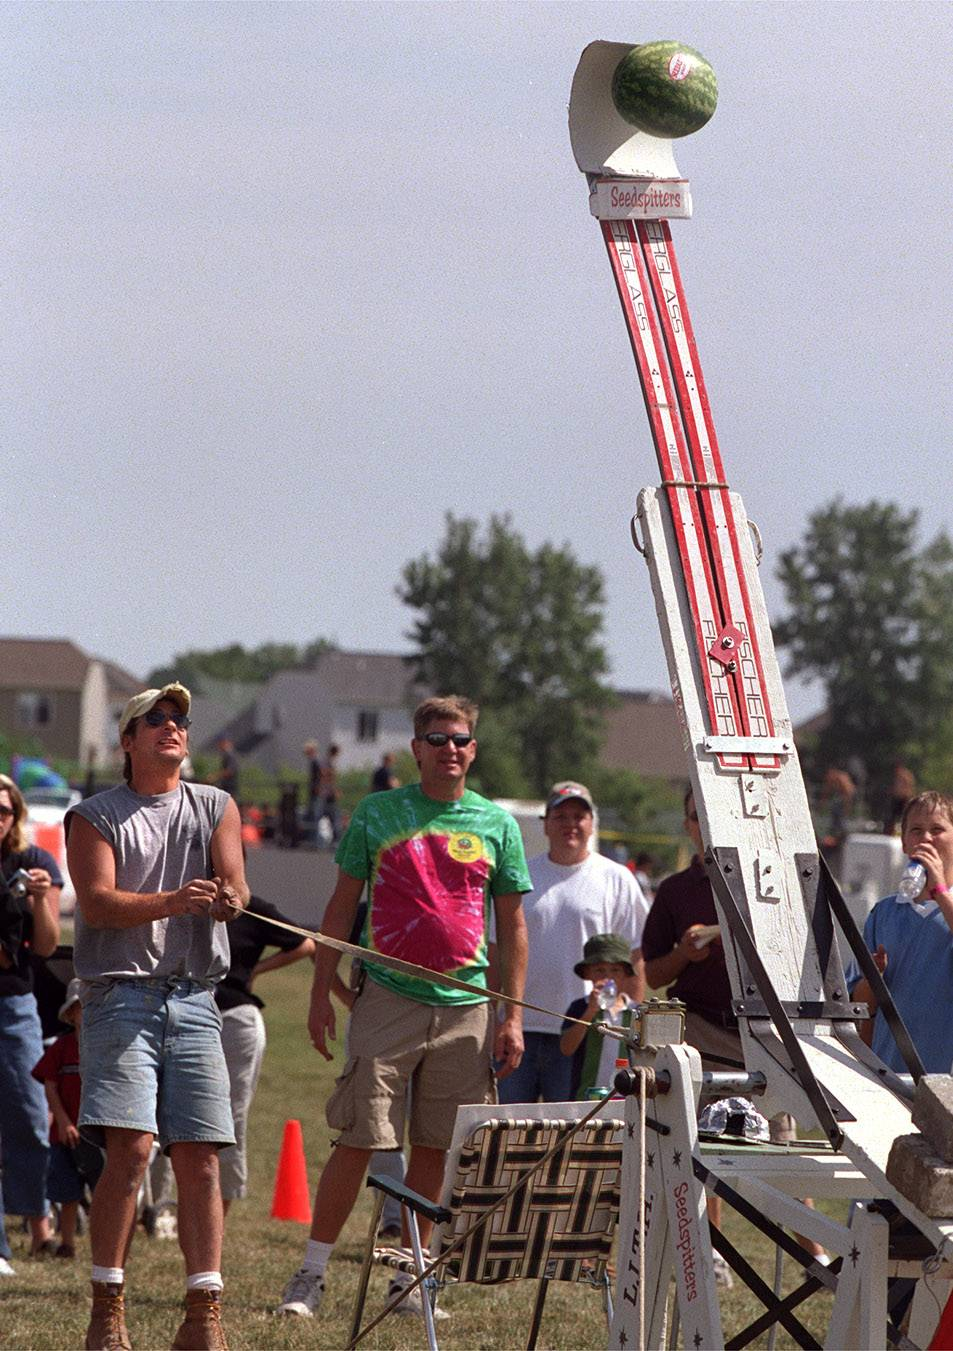 The Melon' Propellin' Contest, in which teams compete to launch watermelons as far as they can, is a popular event at Lake in the Hills Summer Sunset Festival.